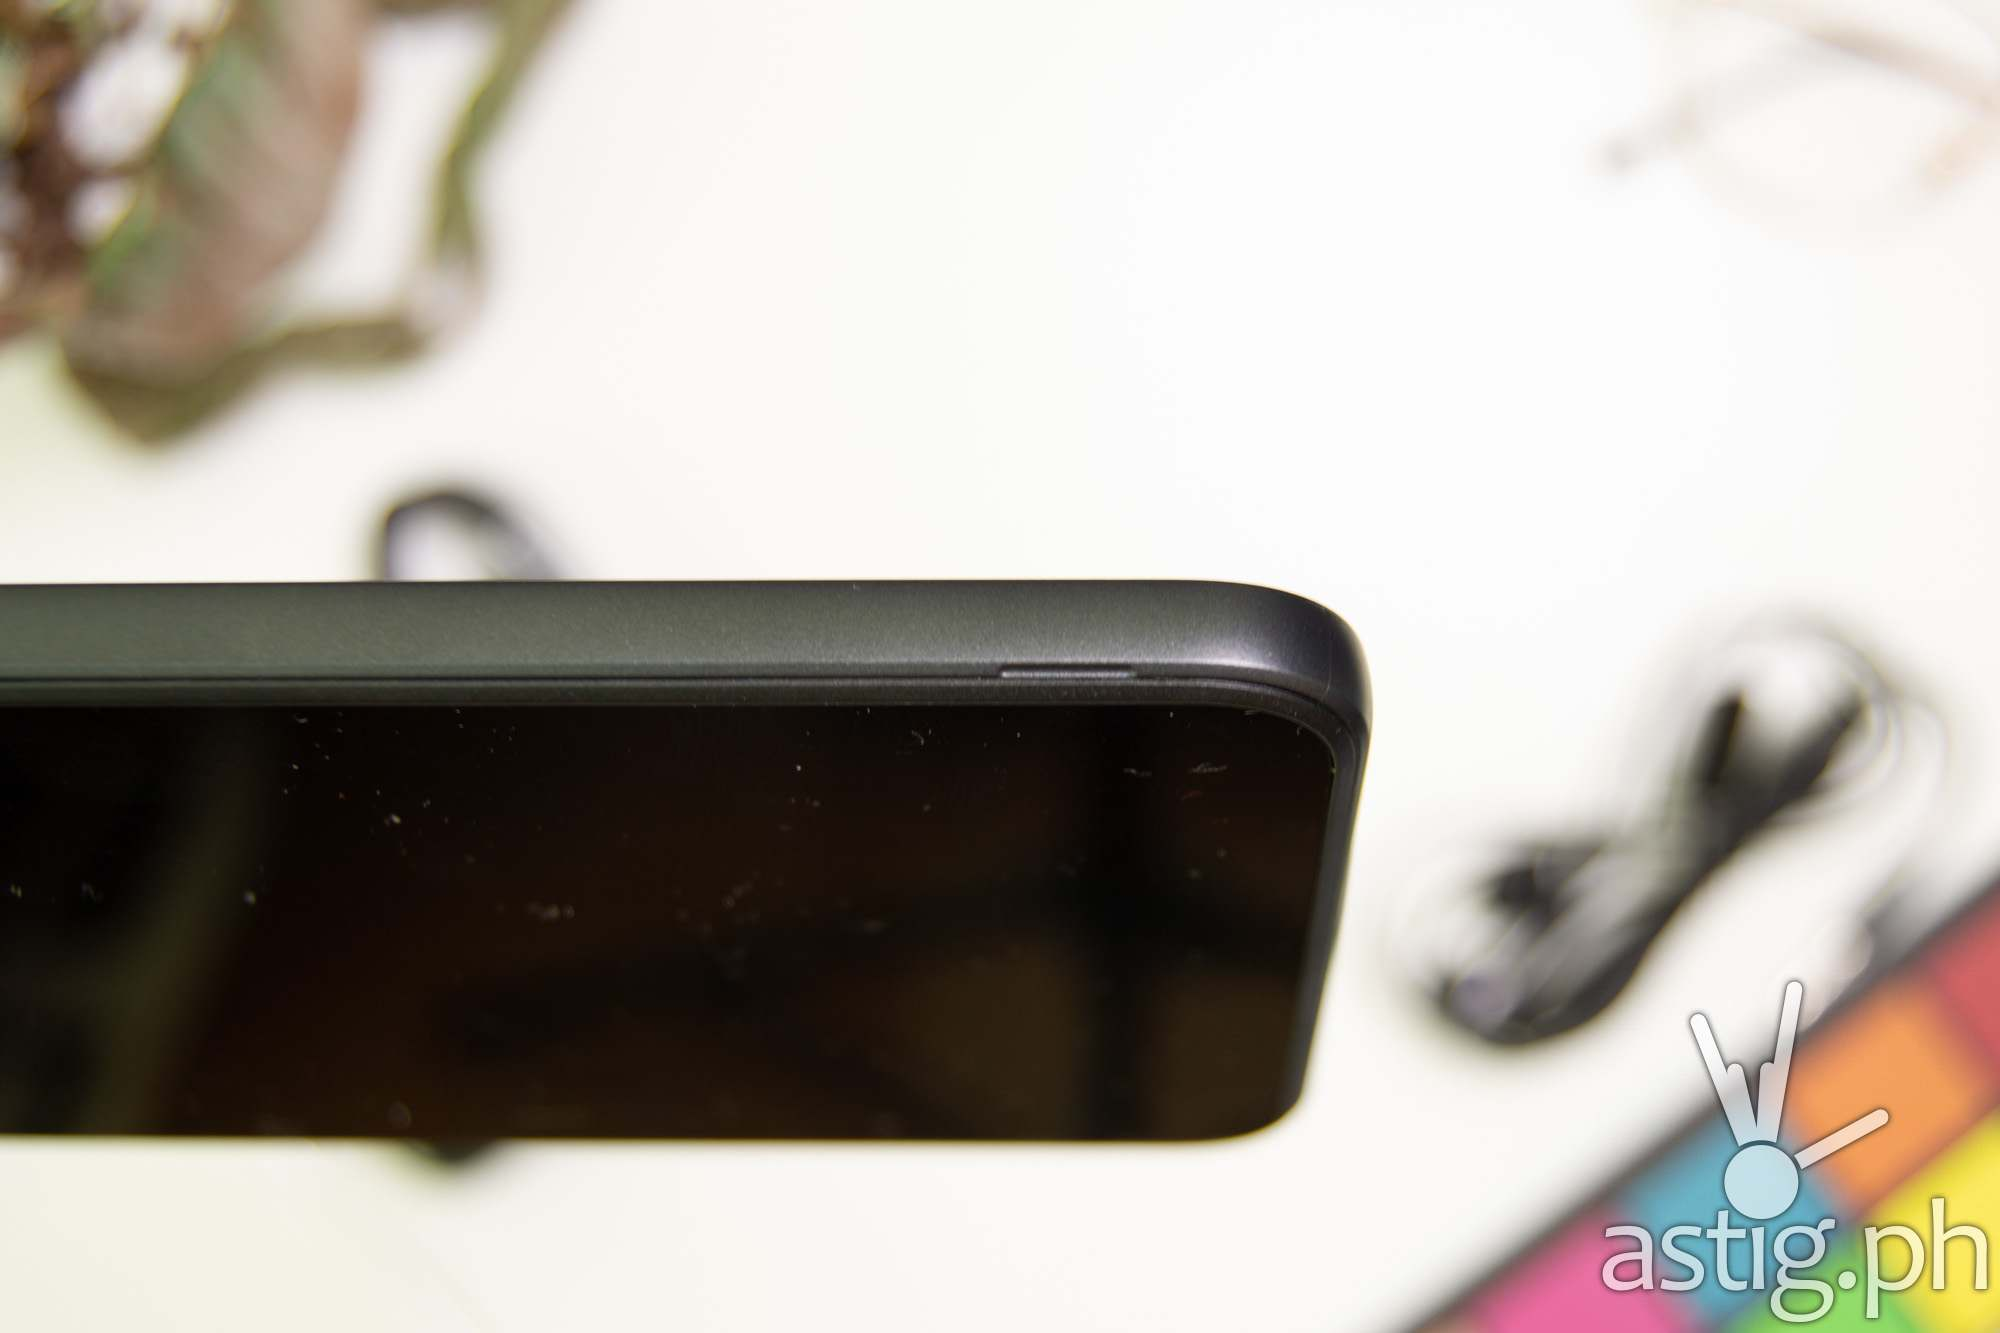 Removable back cover notch - Nokia C2 (Philippines)